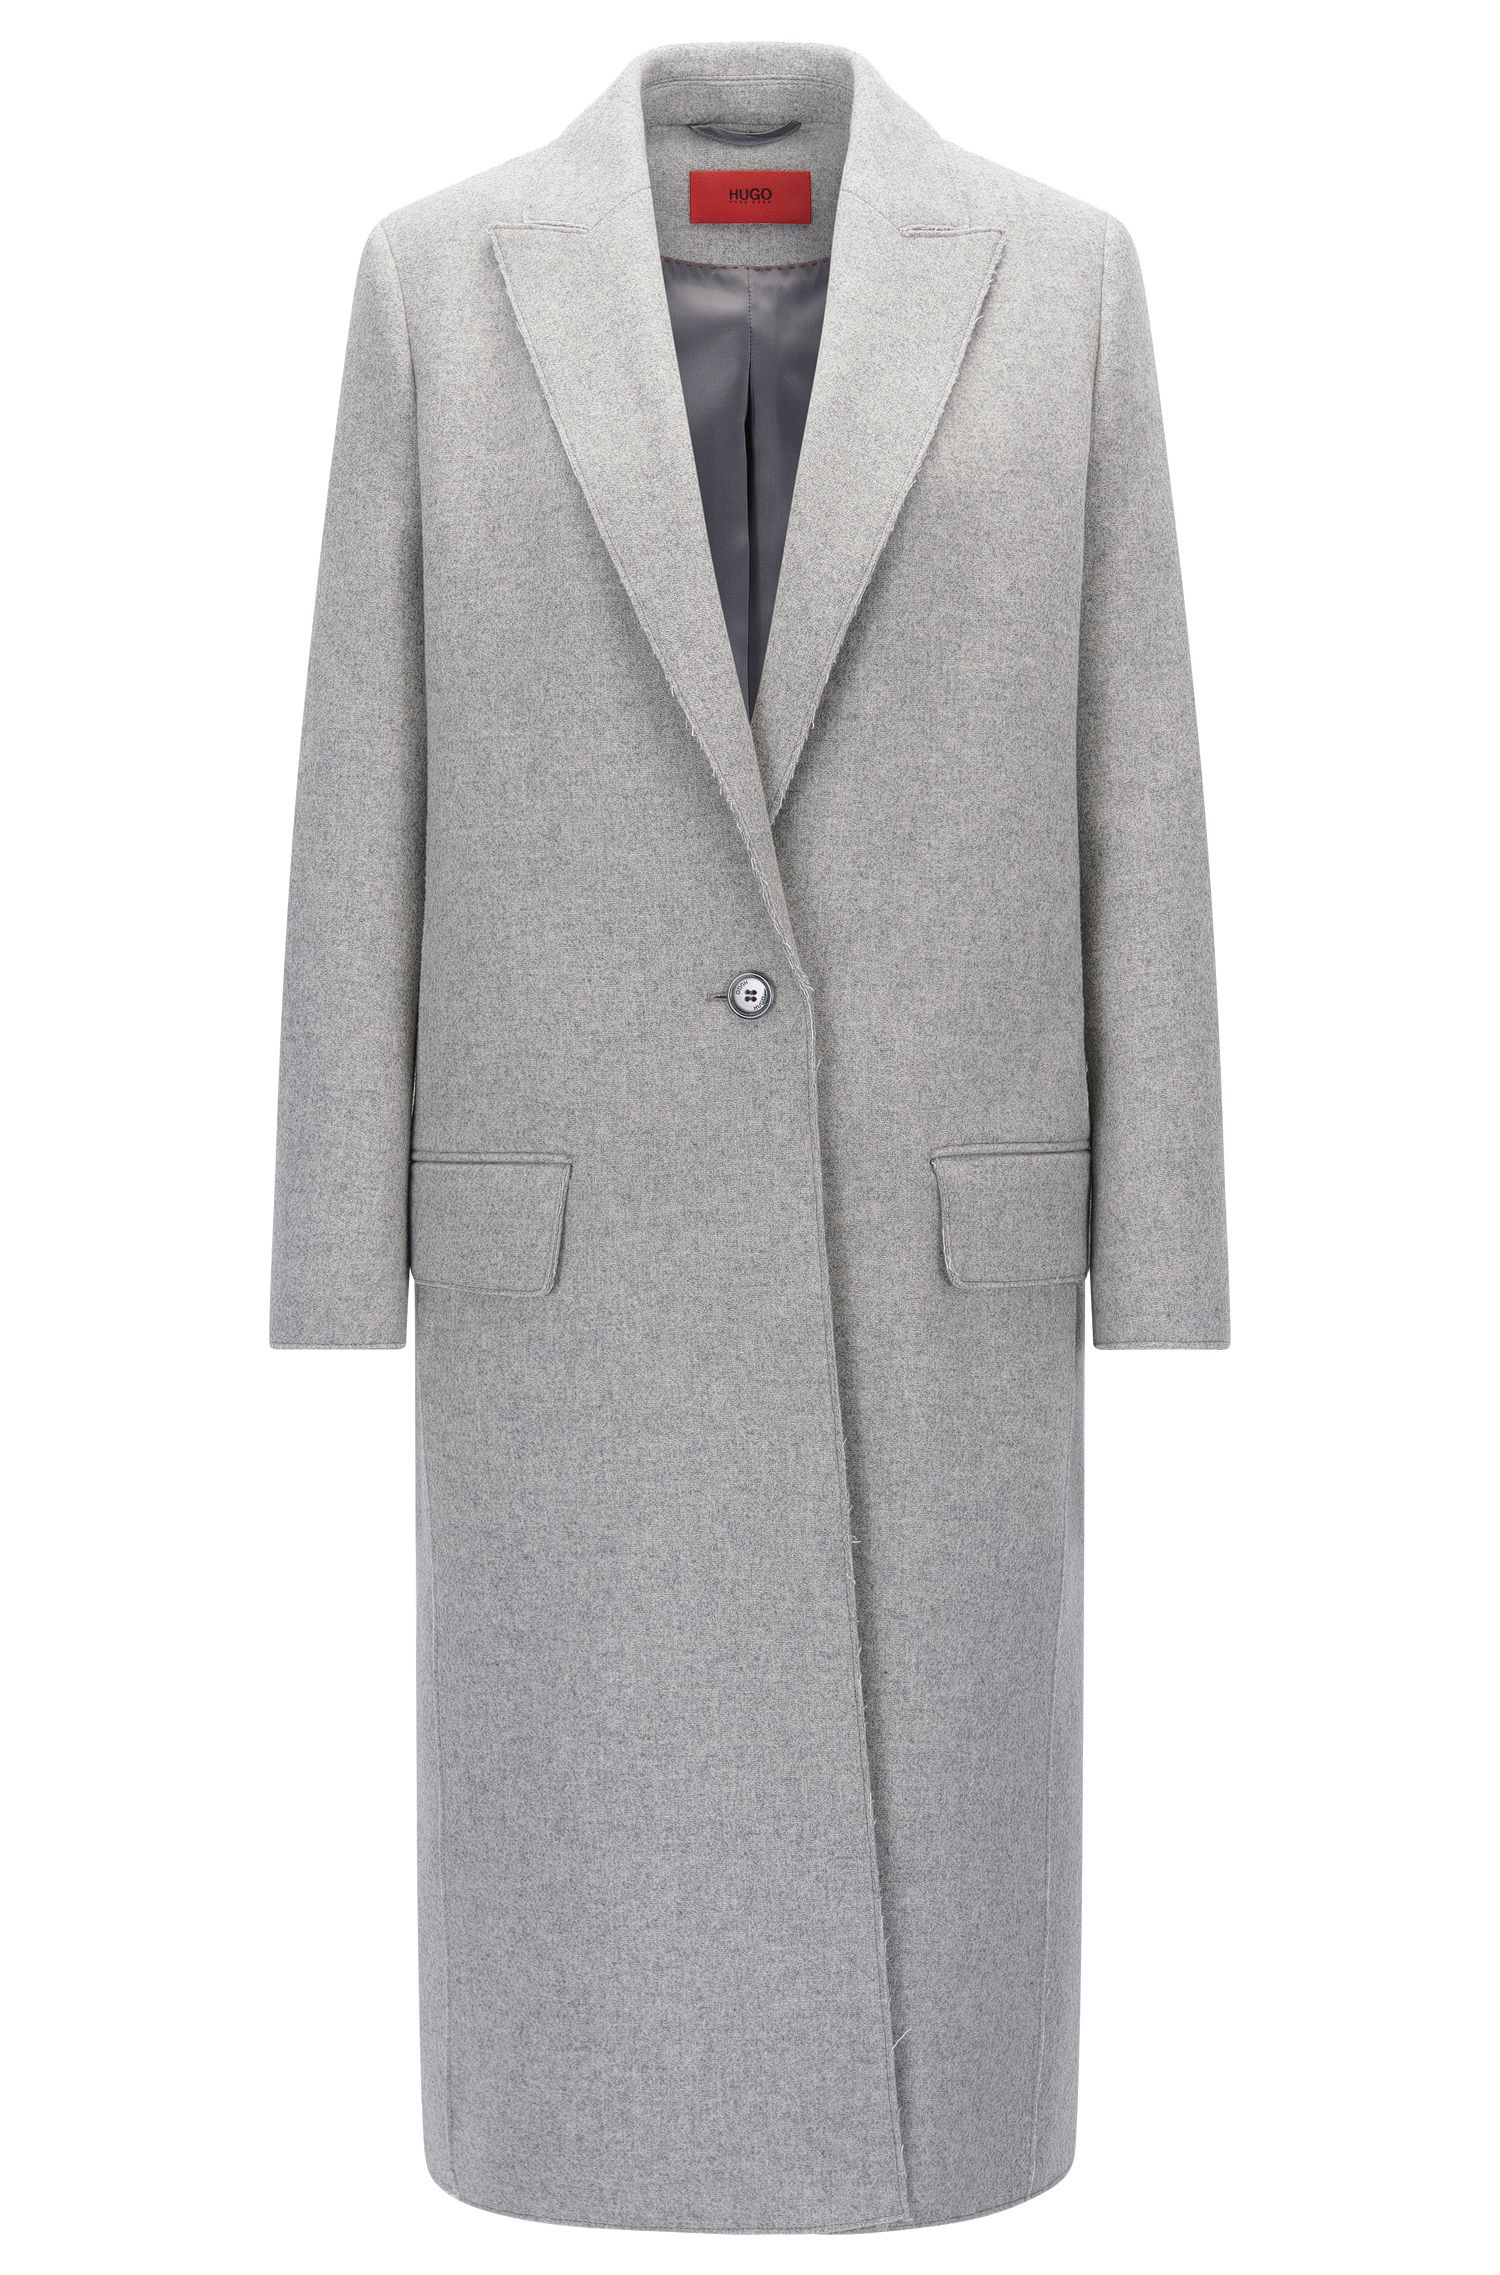 Wool-blend coat in a relaxed fit